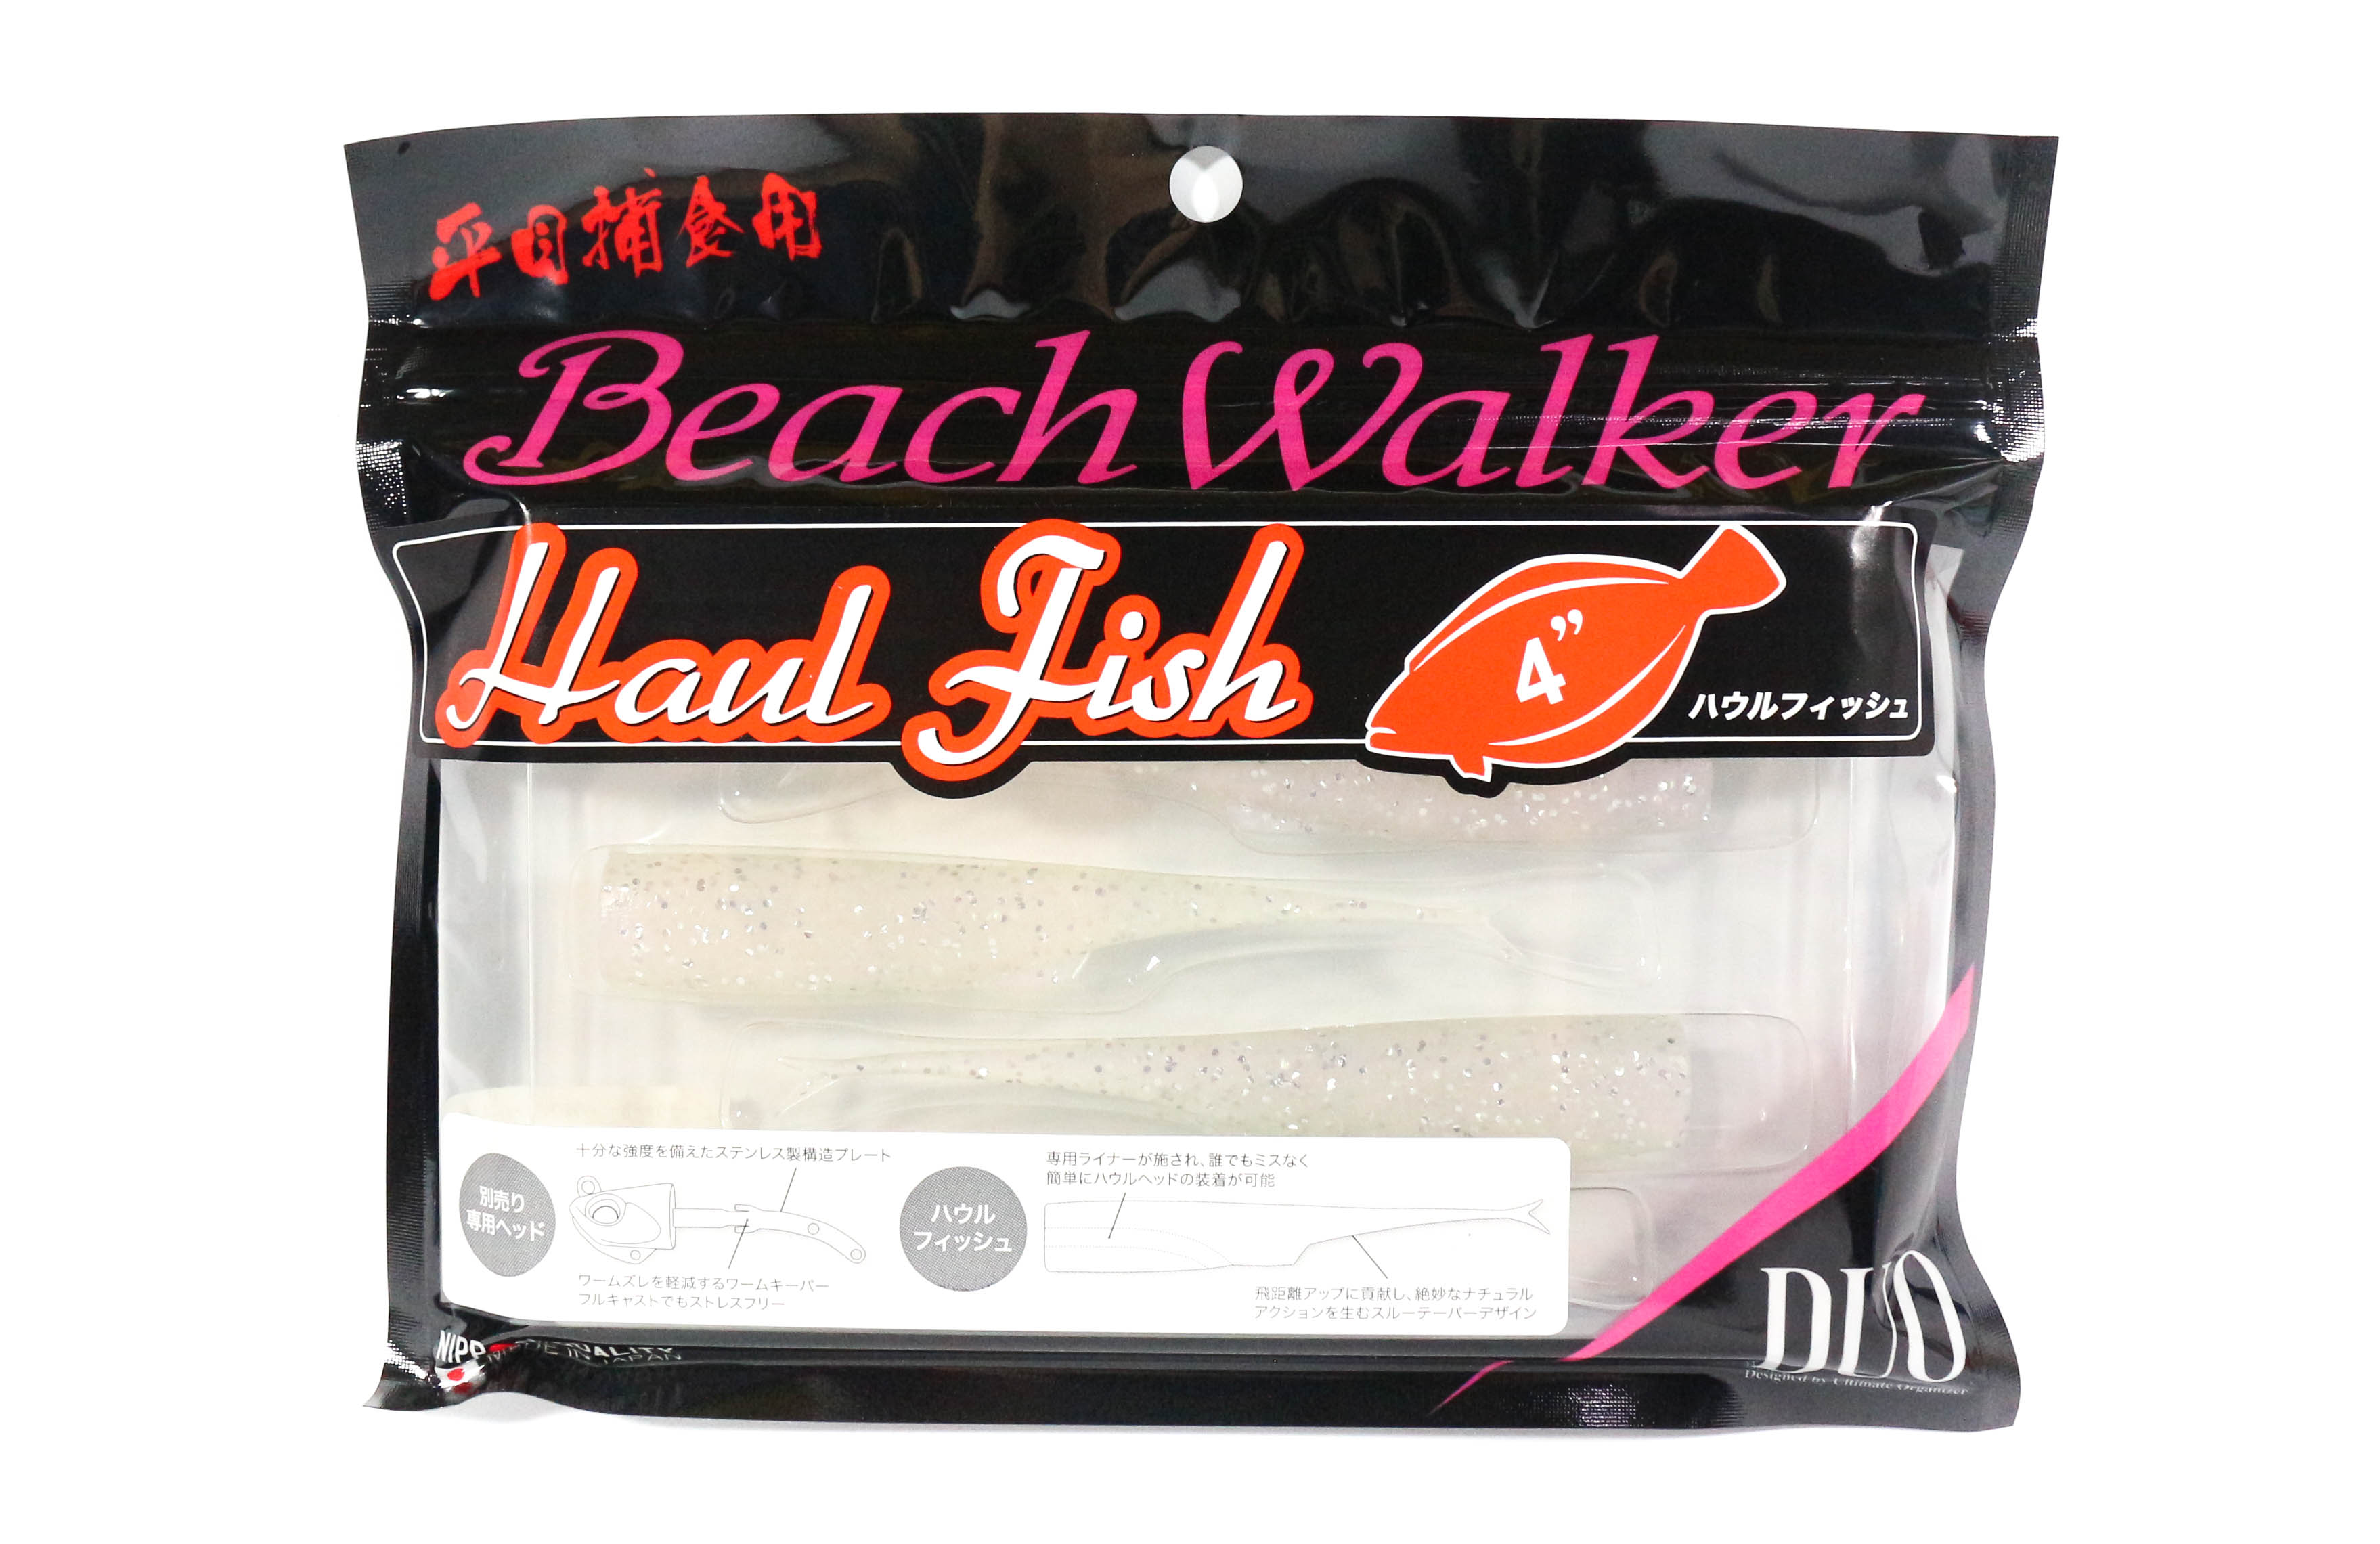 Duo Beach Walker Soft Plastic Haul Fish 4 Inches S009 (9741)